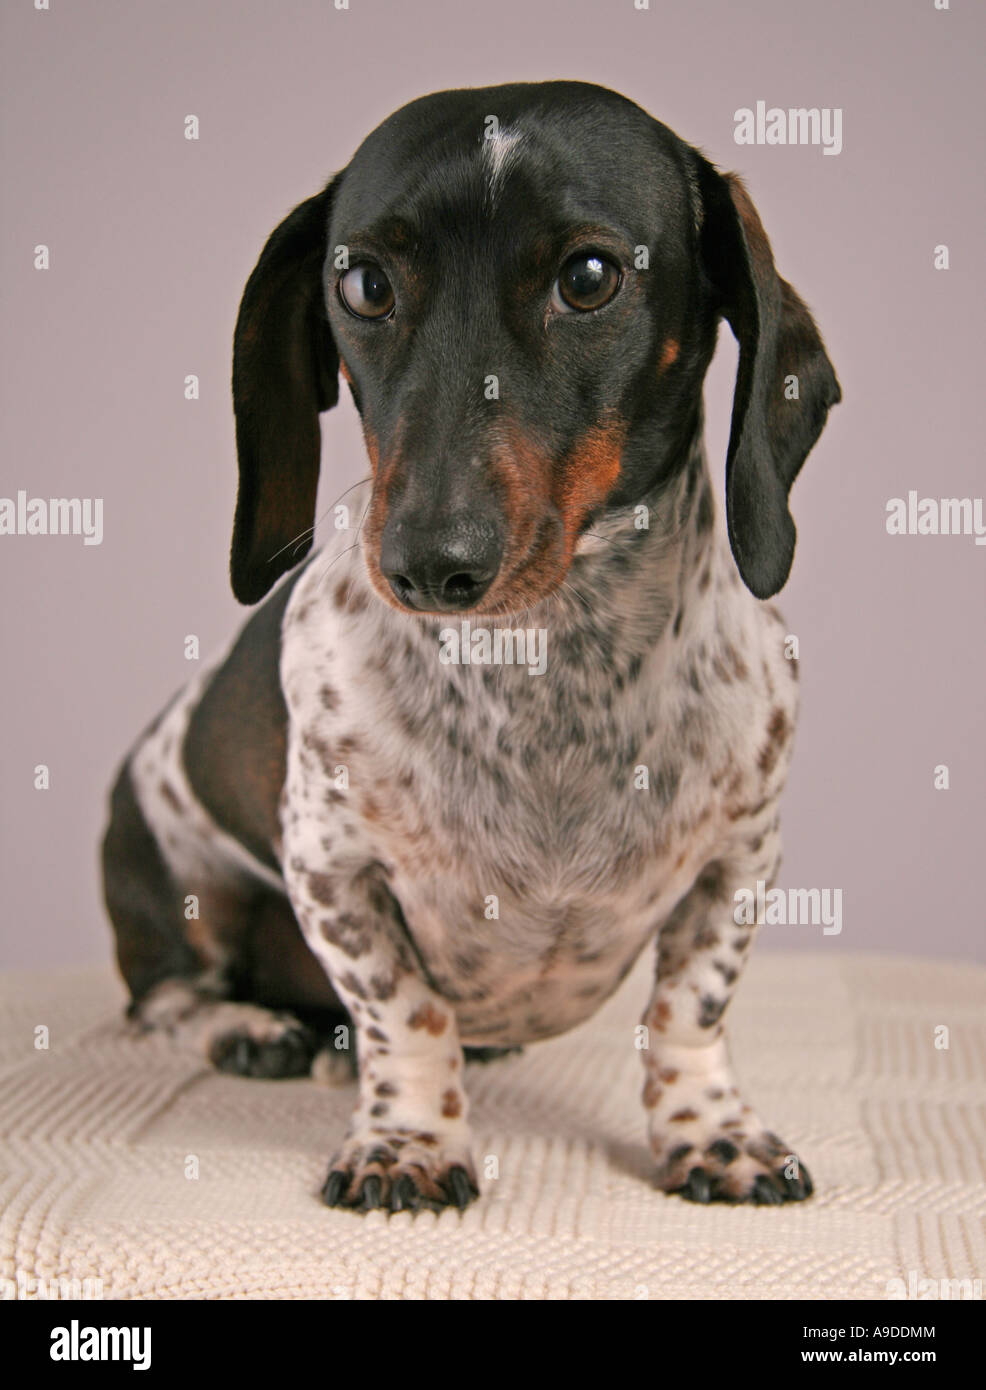 Black And White Piebald Dachshund : black, white, piebald, dachshund, Piebald, Dachshund, Resolution, Stock, Photography, Images, Alamy